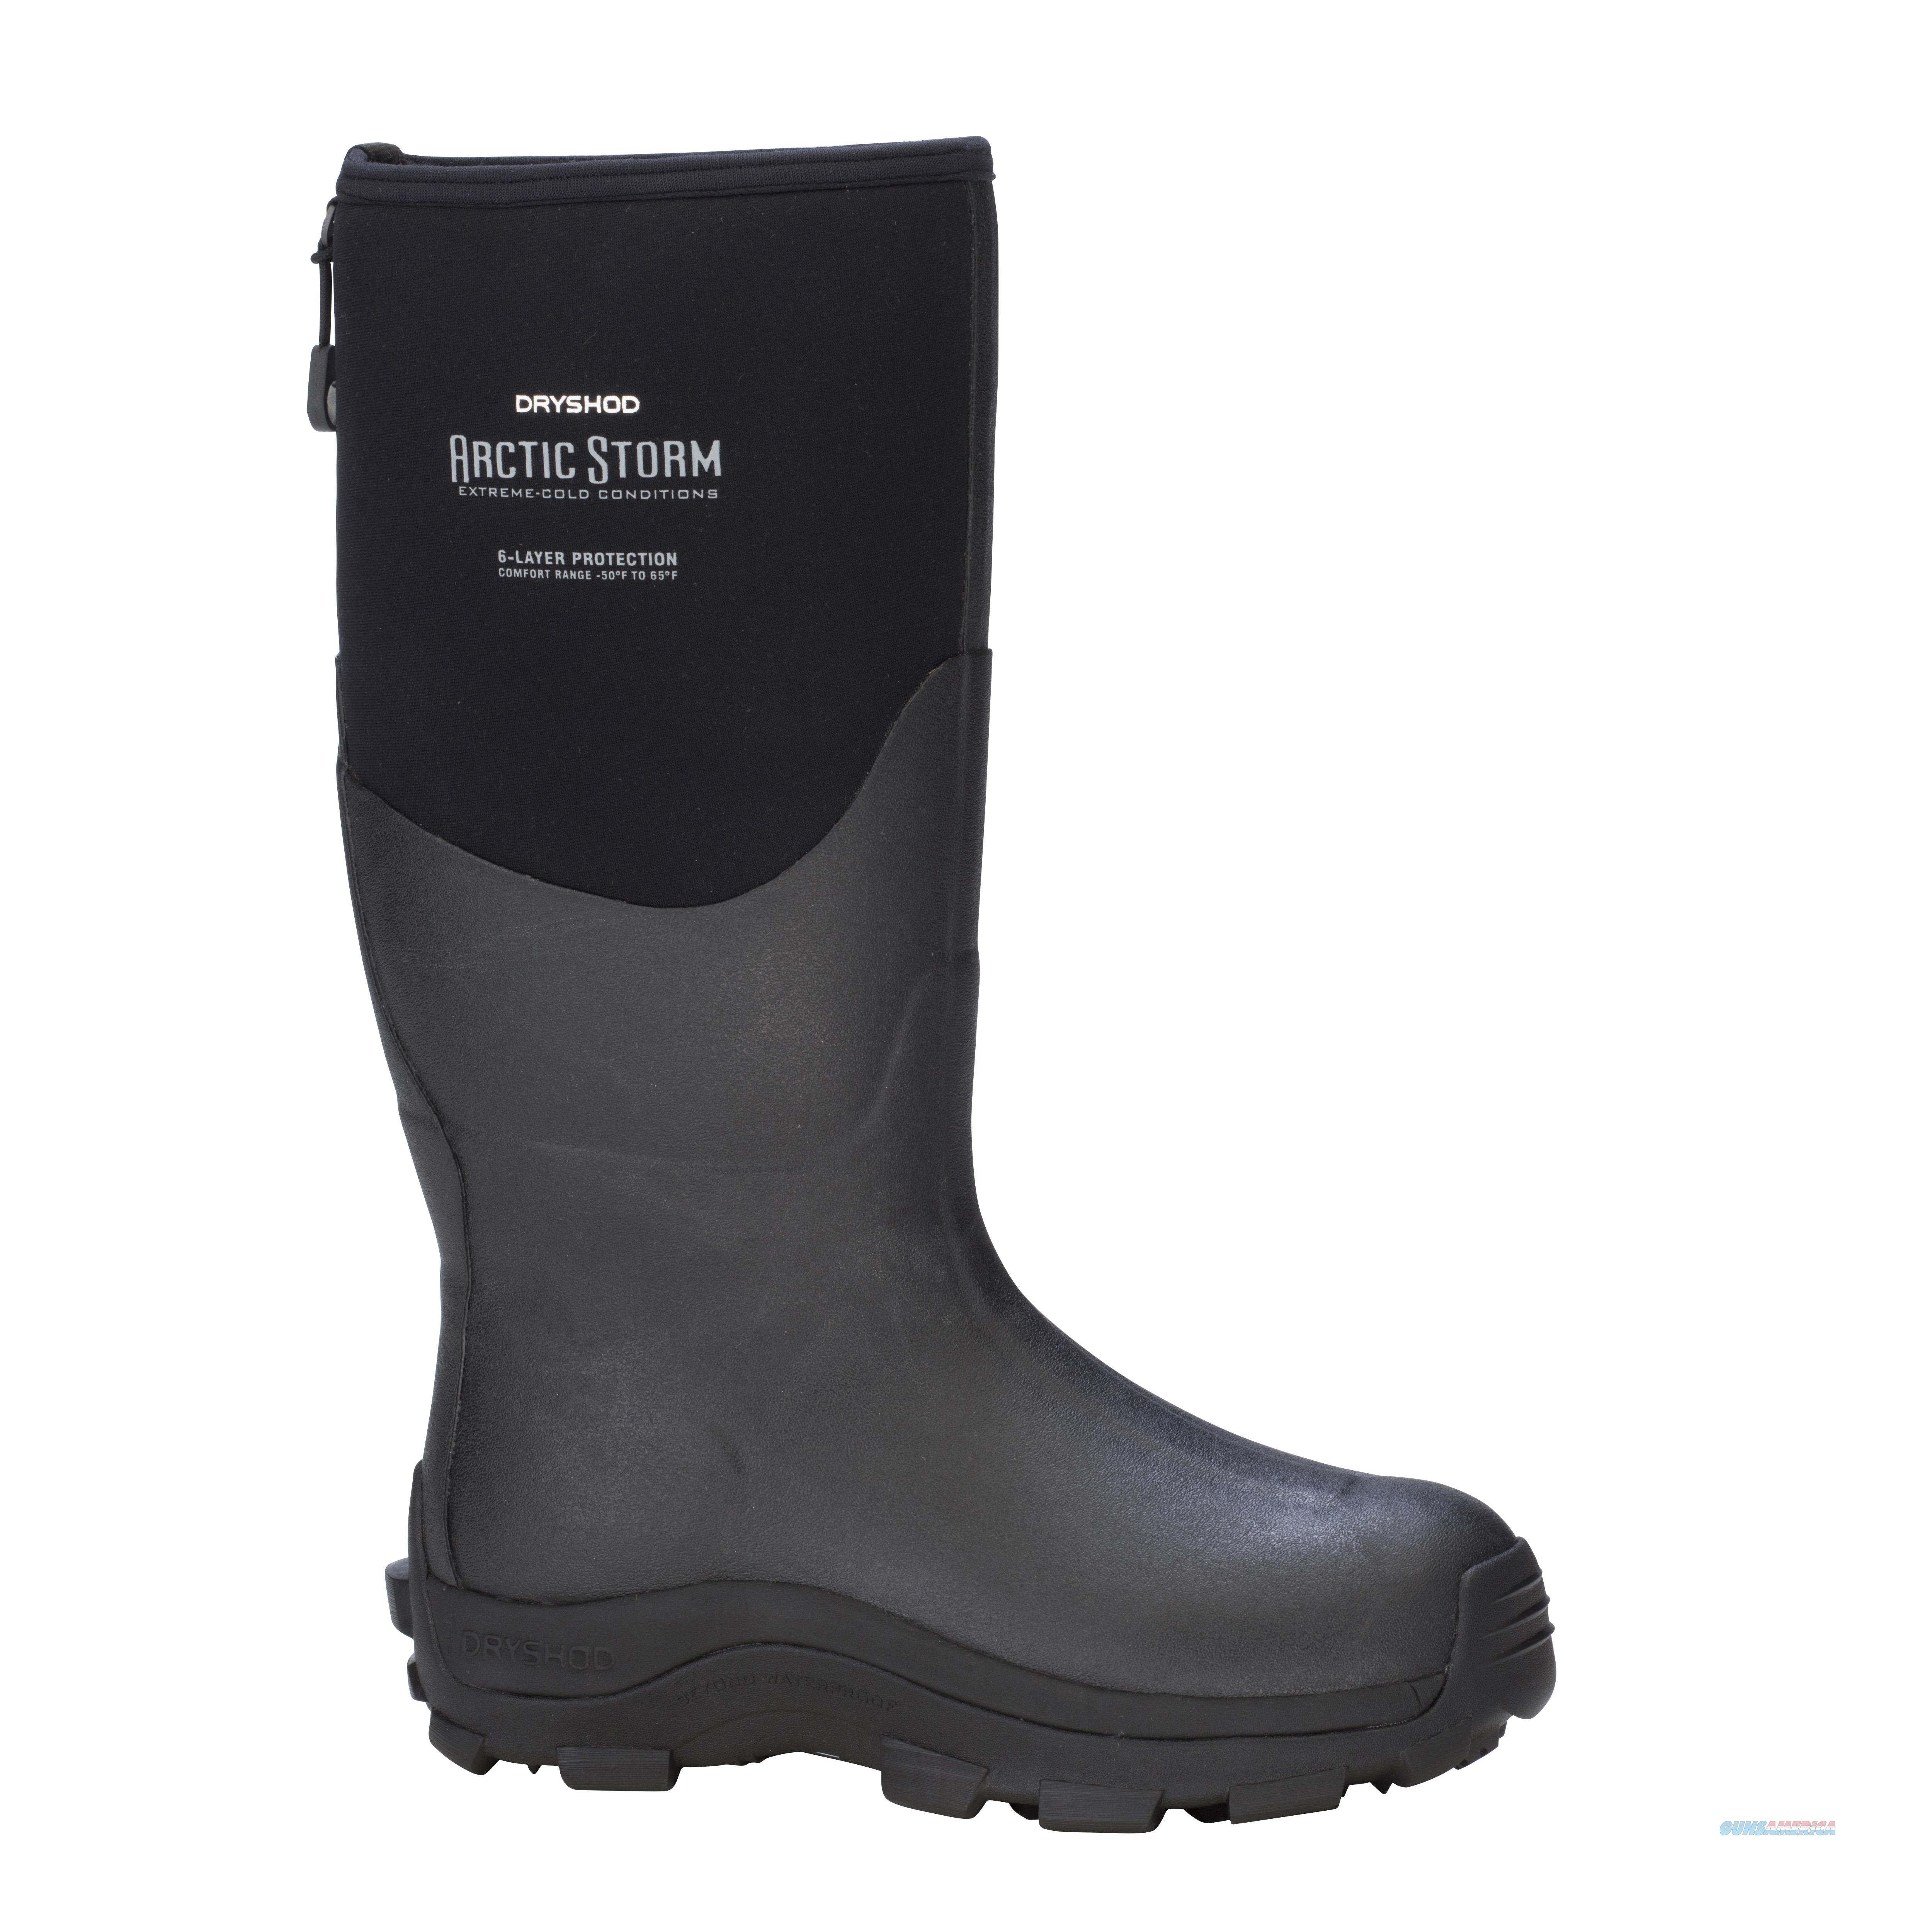 Dryshod Arctic Storm Hi Cut Boot Size 12  Non-Guns > Hunting Clothing and Equipment > Clothing > Camo Outerwear